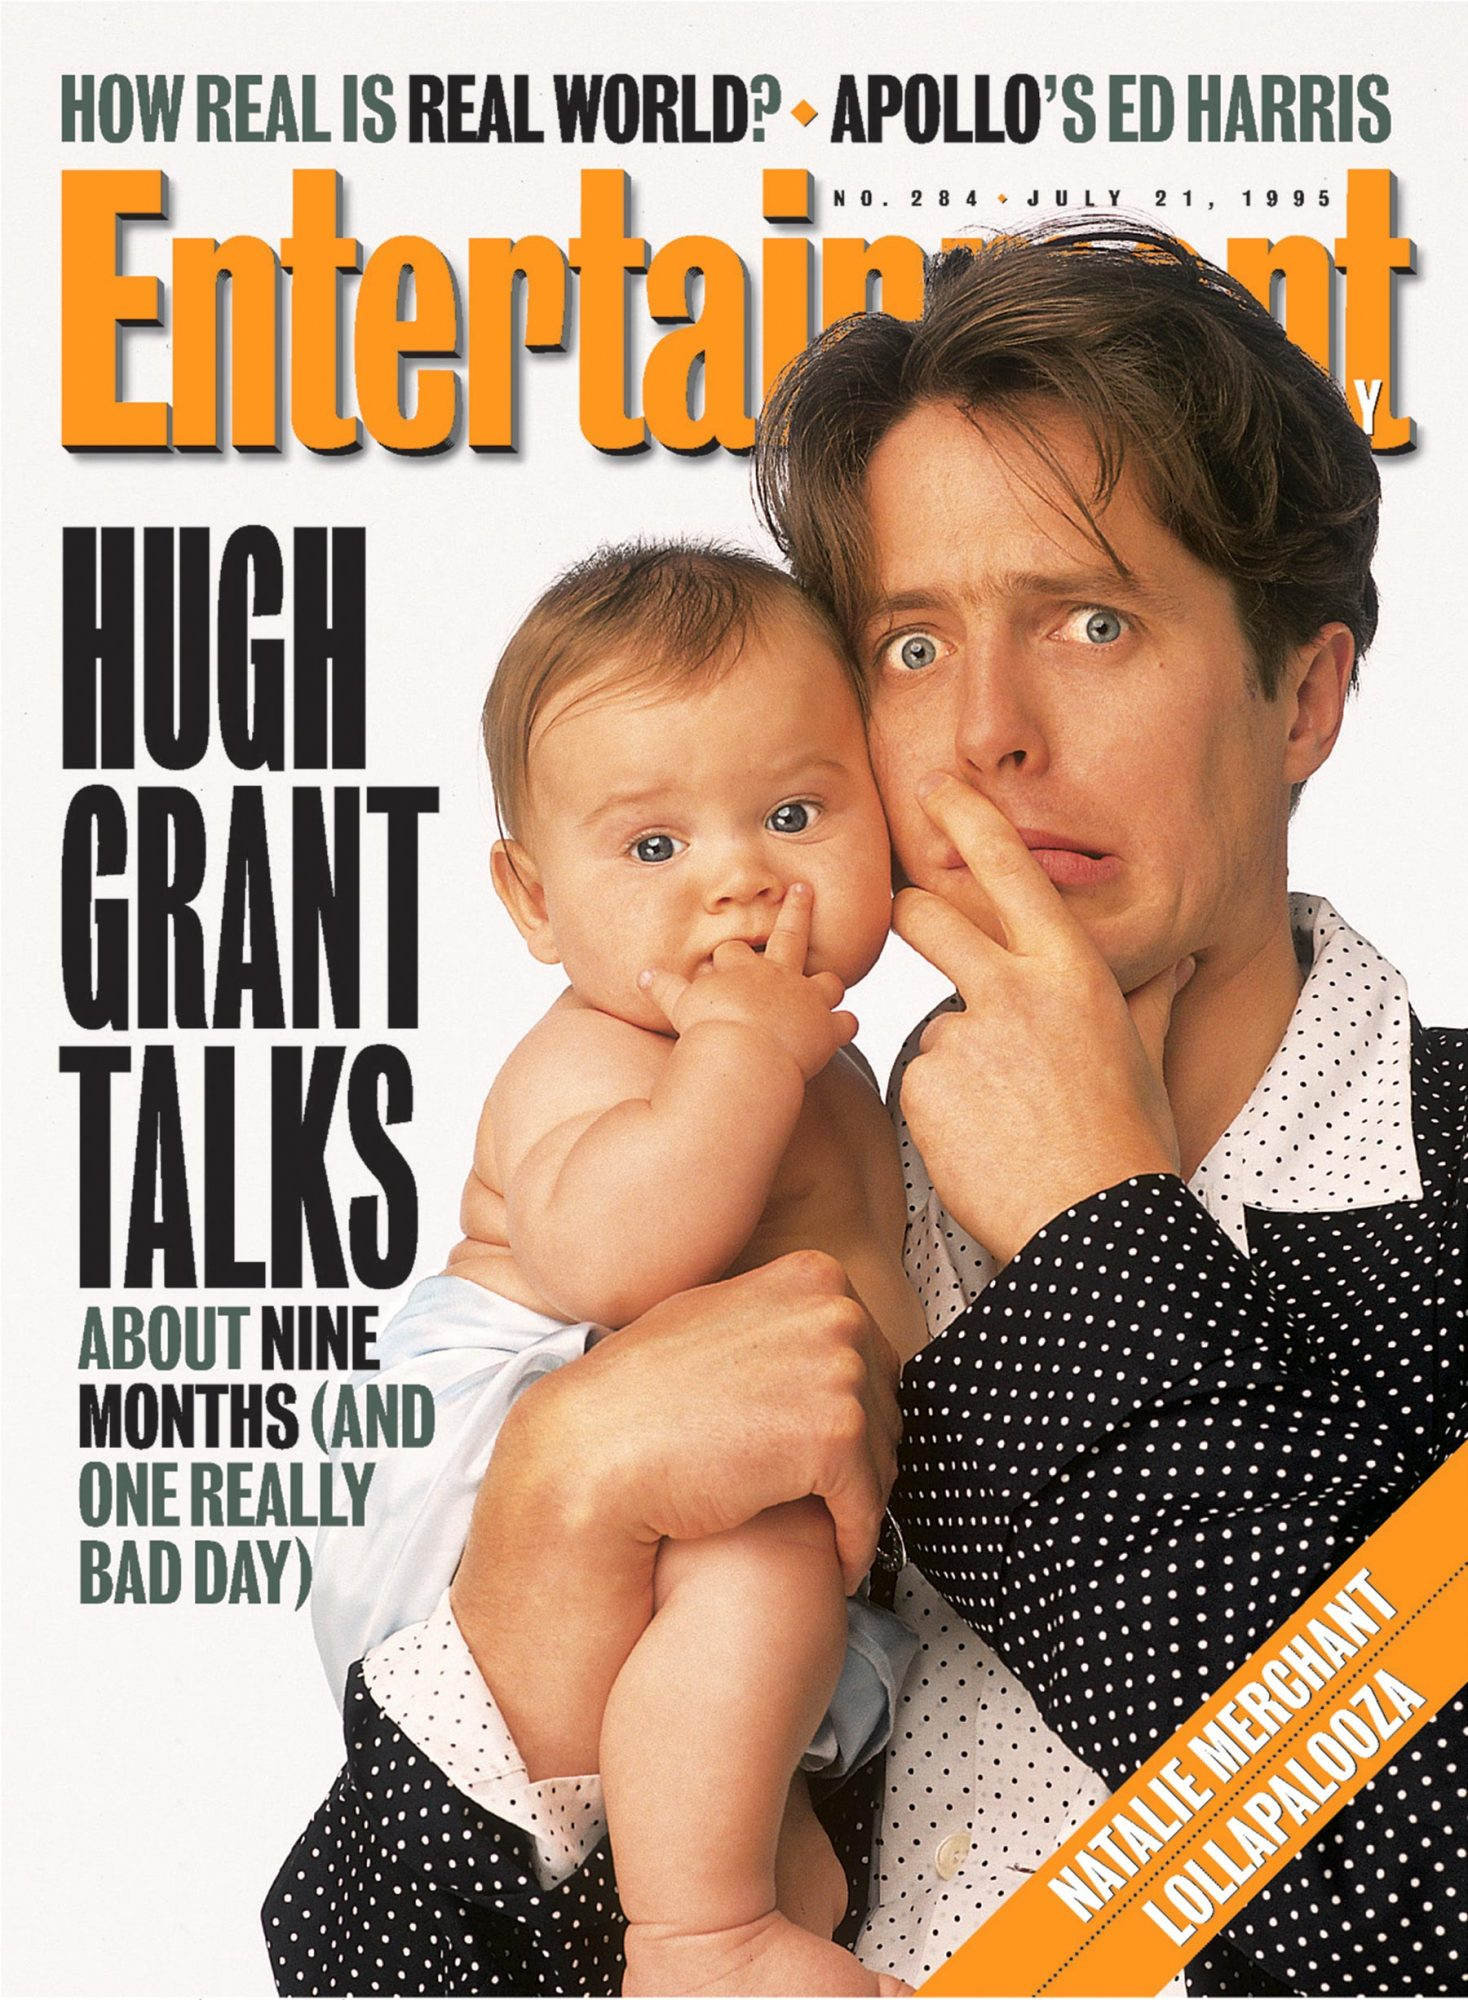 Entertainment WeeklyHugh GrantJuly 21, 1995# 284